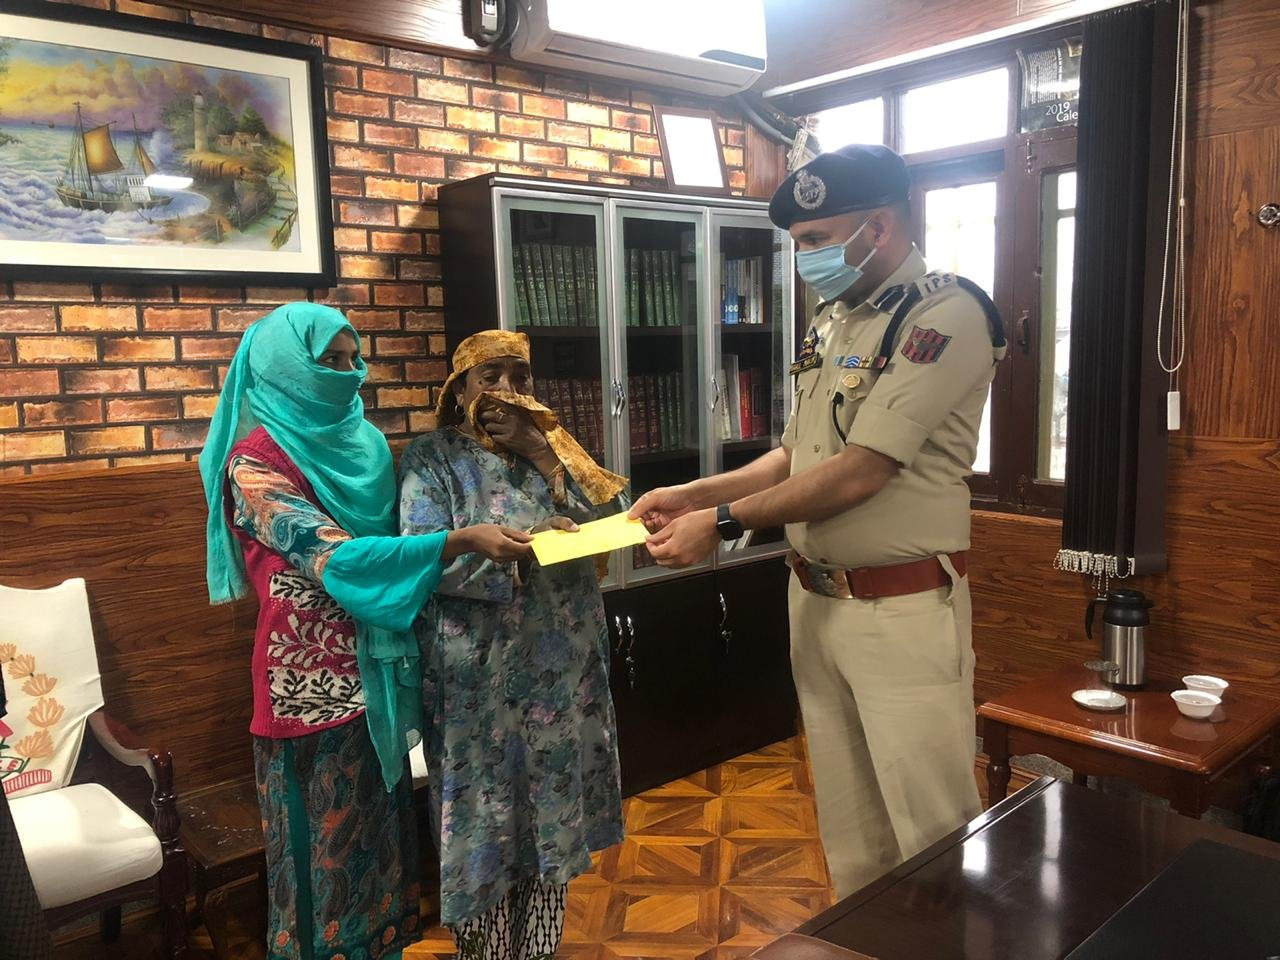 Bandipora police provides cash relief to fire victim of Gamroo village